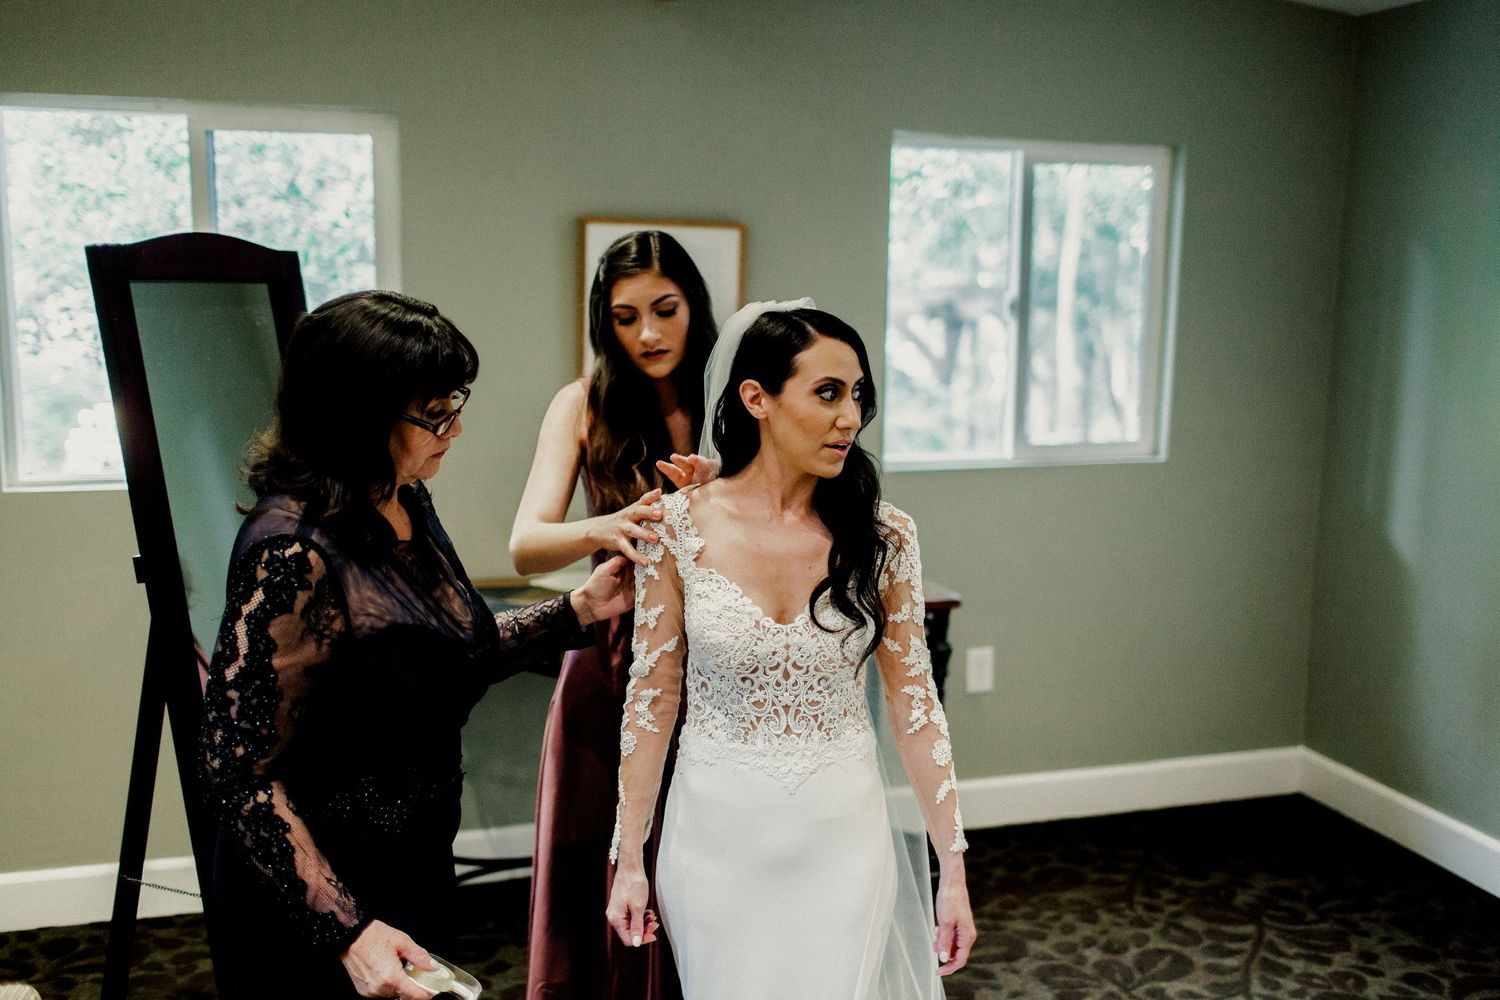 mom and sister helping bride put on wedding dress